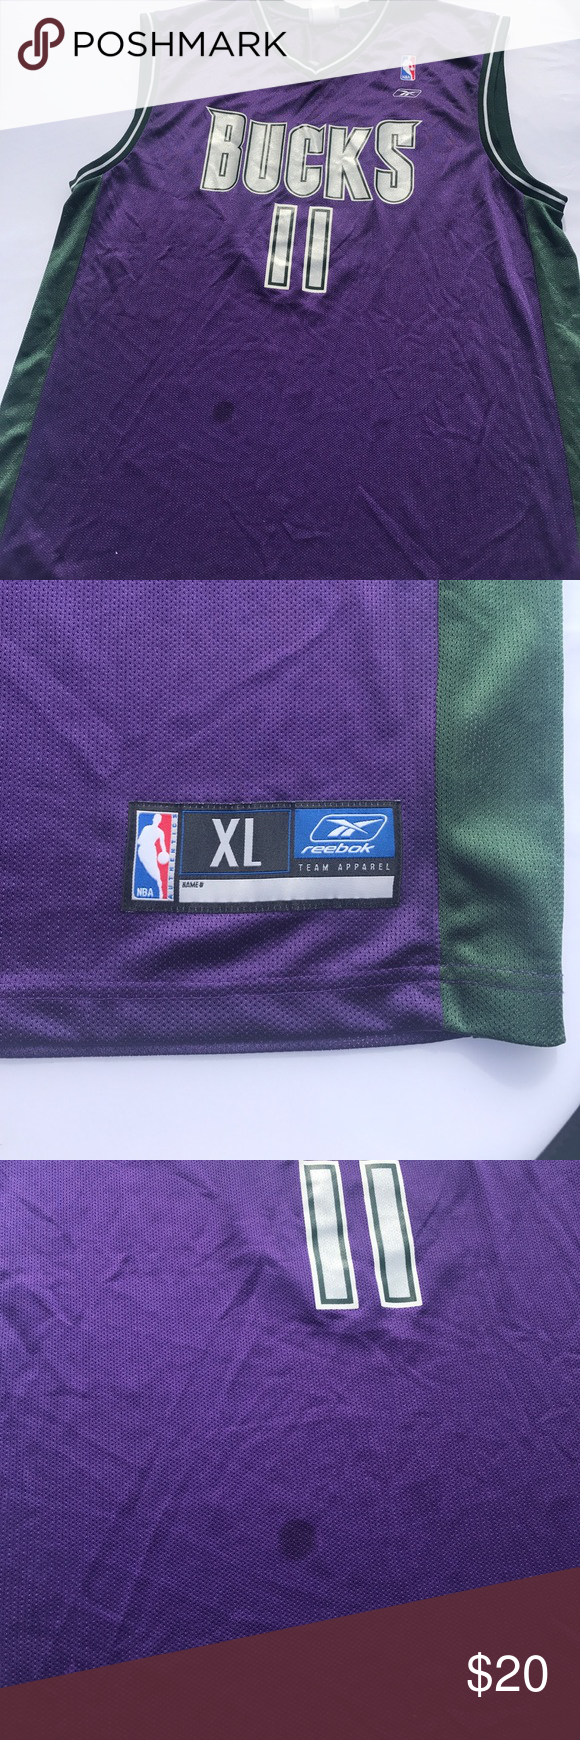 4b42bdc09aa Nba Milwaukee bucks t j ford 11 purple reebok Xl Milwaukee bucks purple a  couple of stains but overall great jersey patches in great condition Reebok  ...